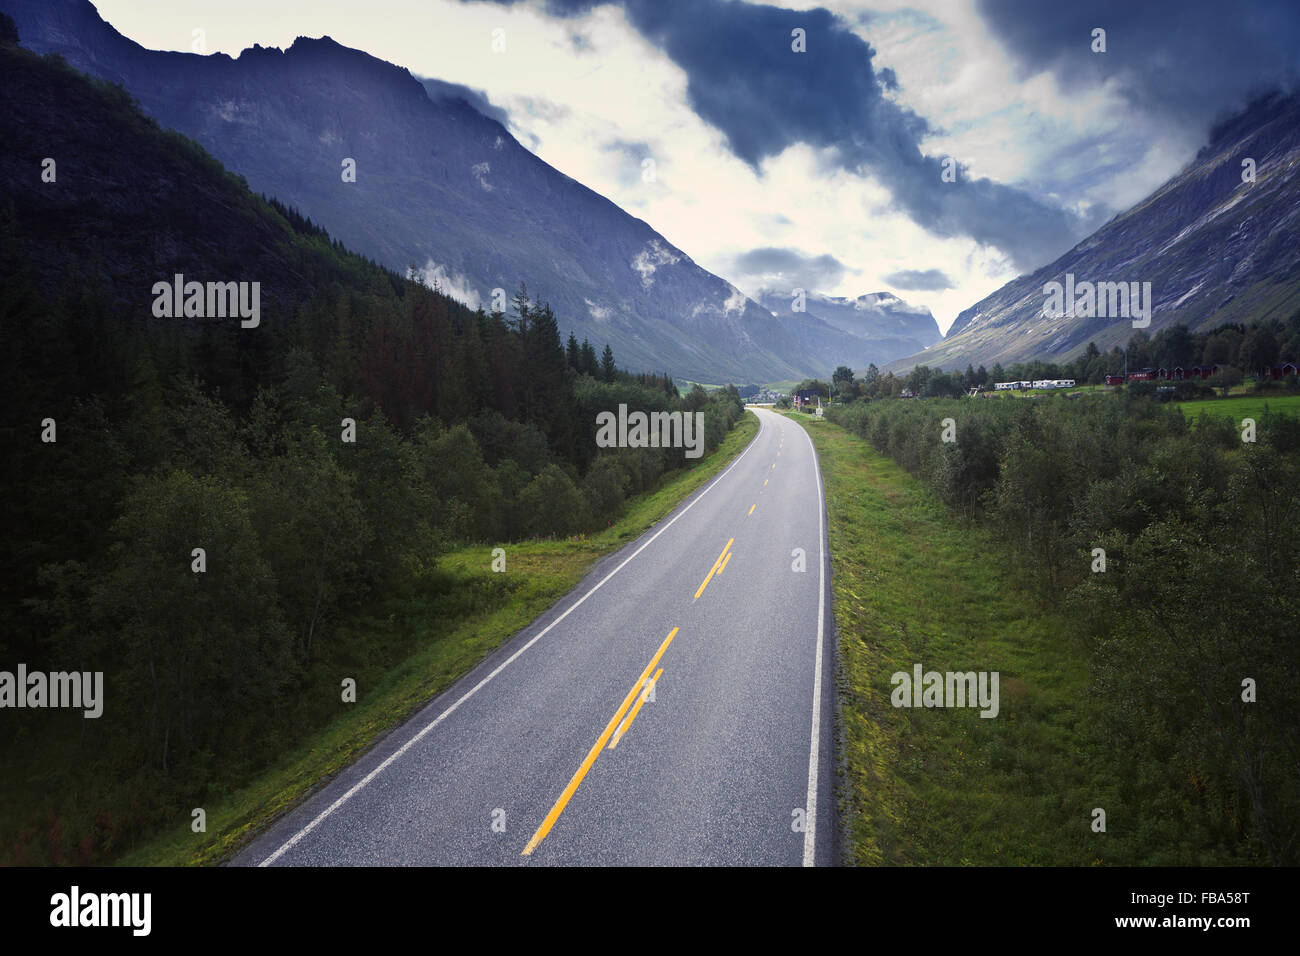 Norway, More og Romsdal, Sunnmore, View along road leading through mountain valley - Stock Image